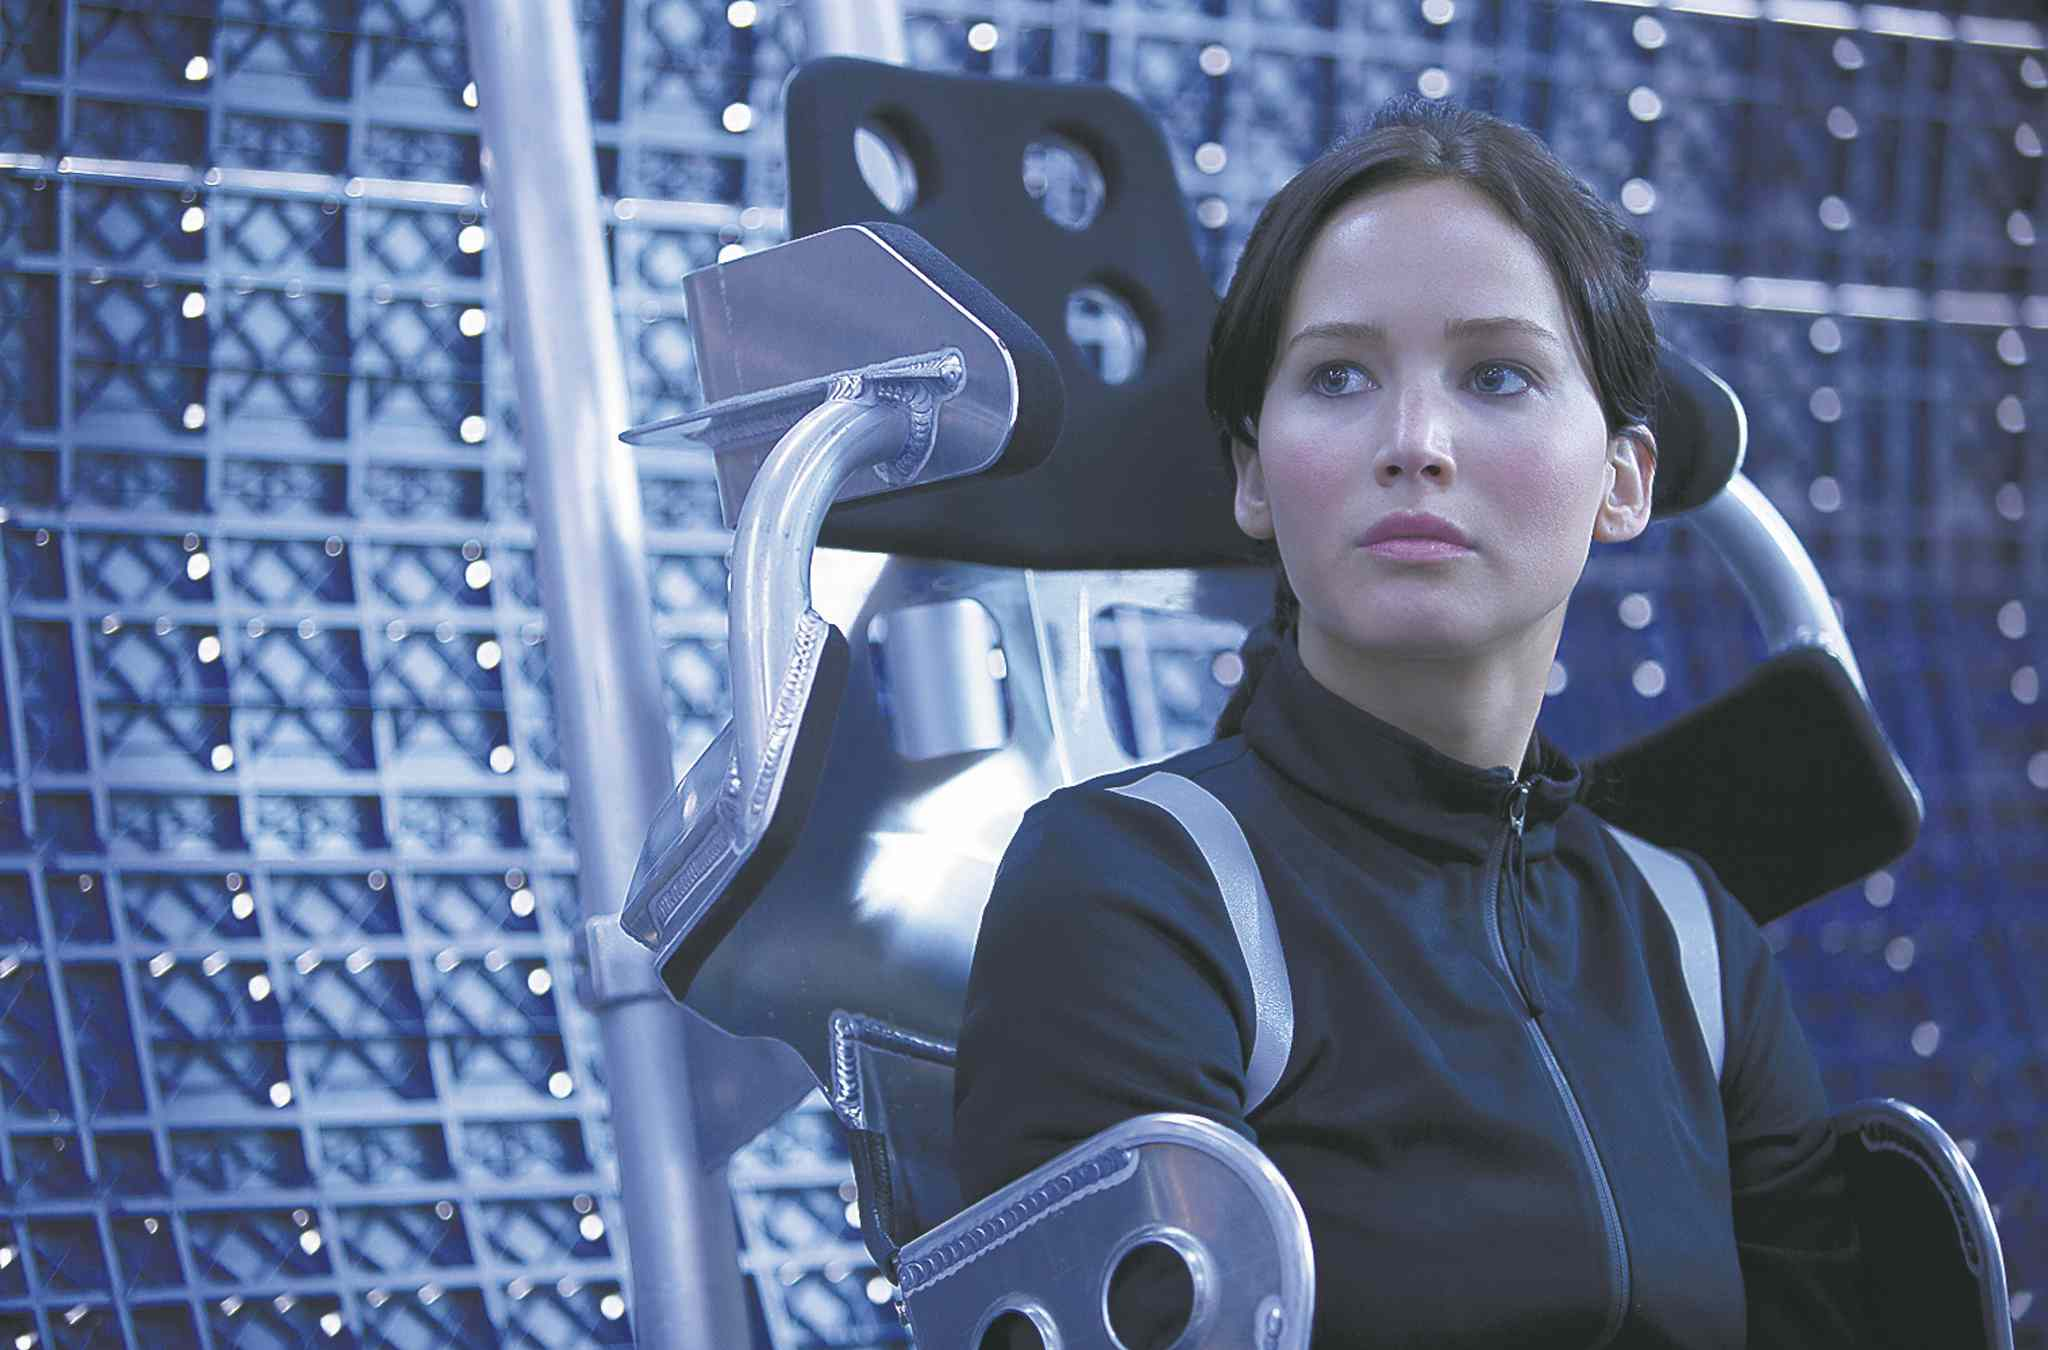 Jennifer  Lawrence was initially reluctant to take on the role of Katniss Everdeen in the Hunger Games series.